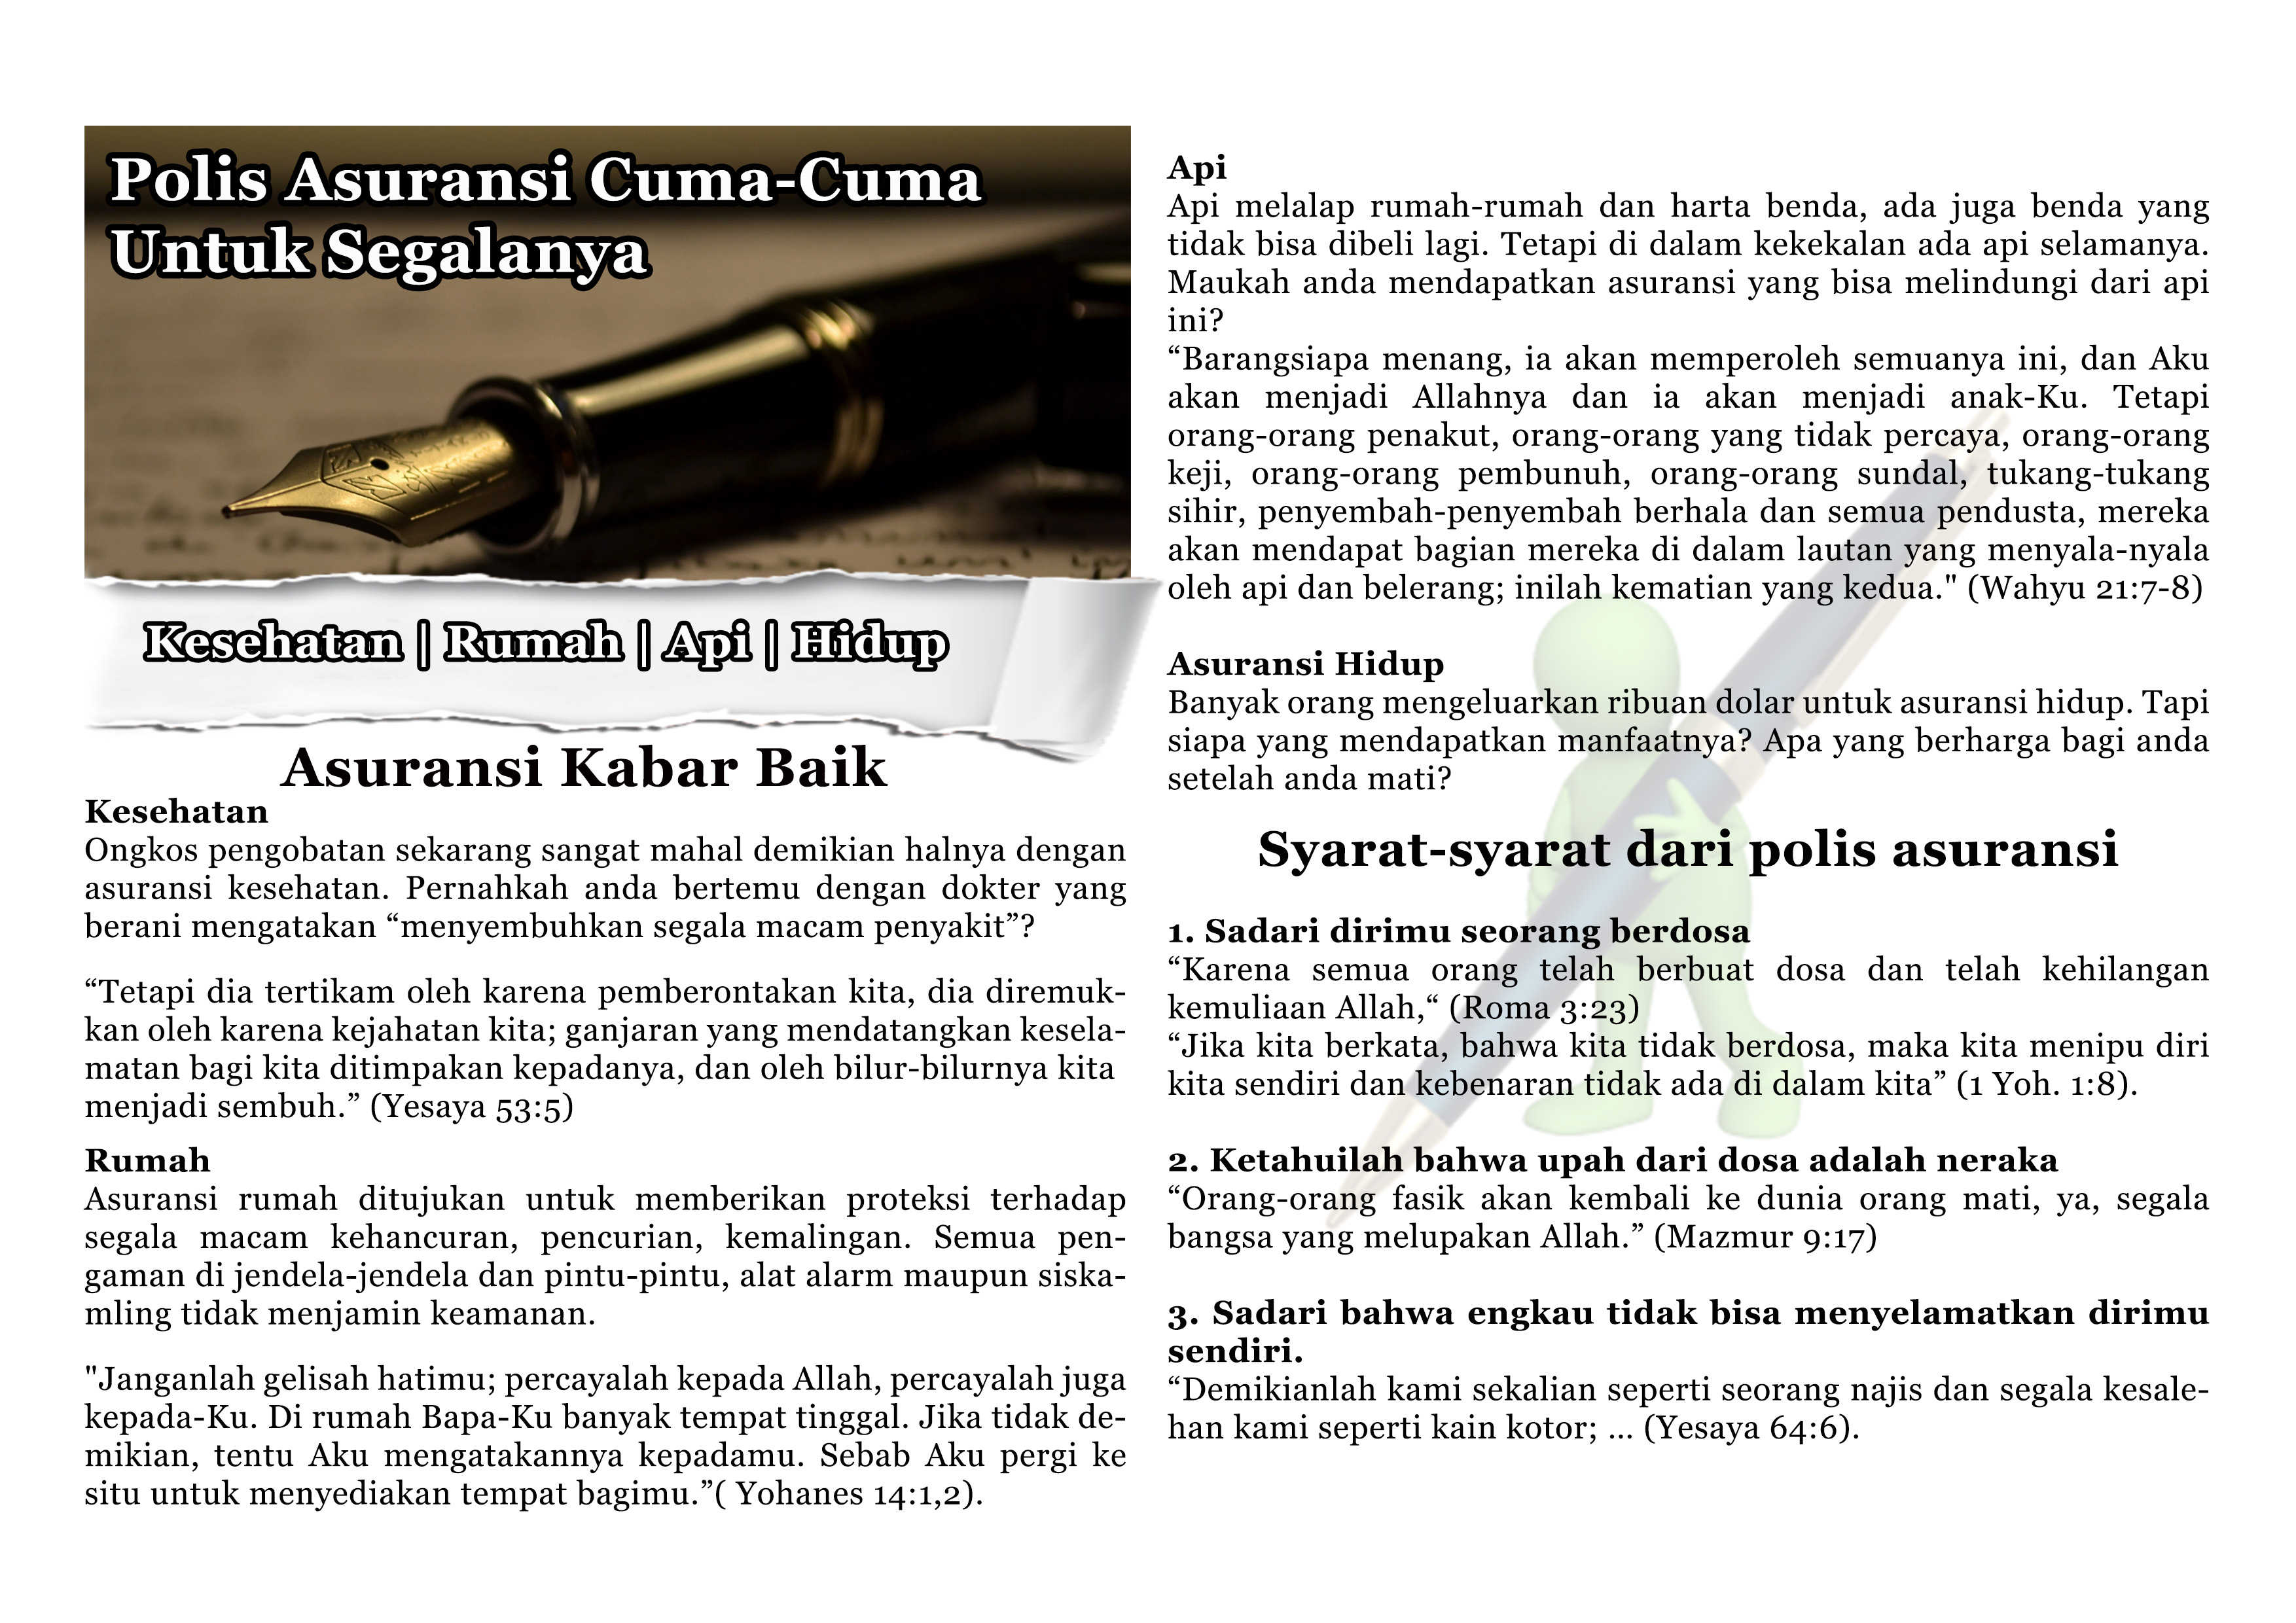 Insurance policy indo